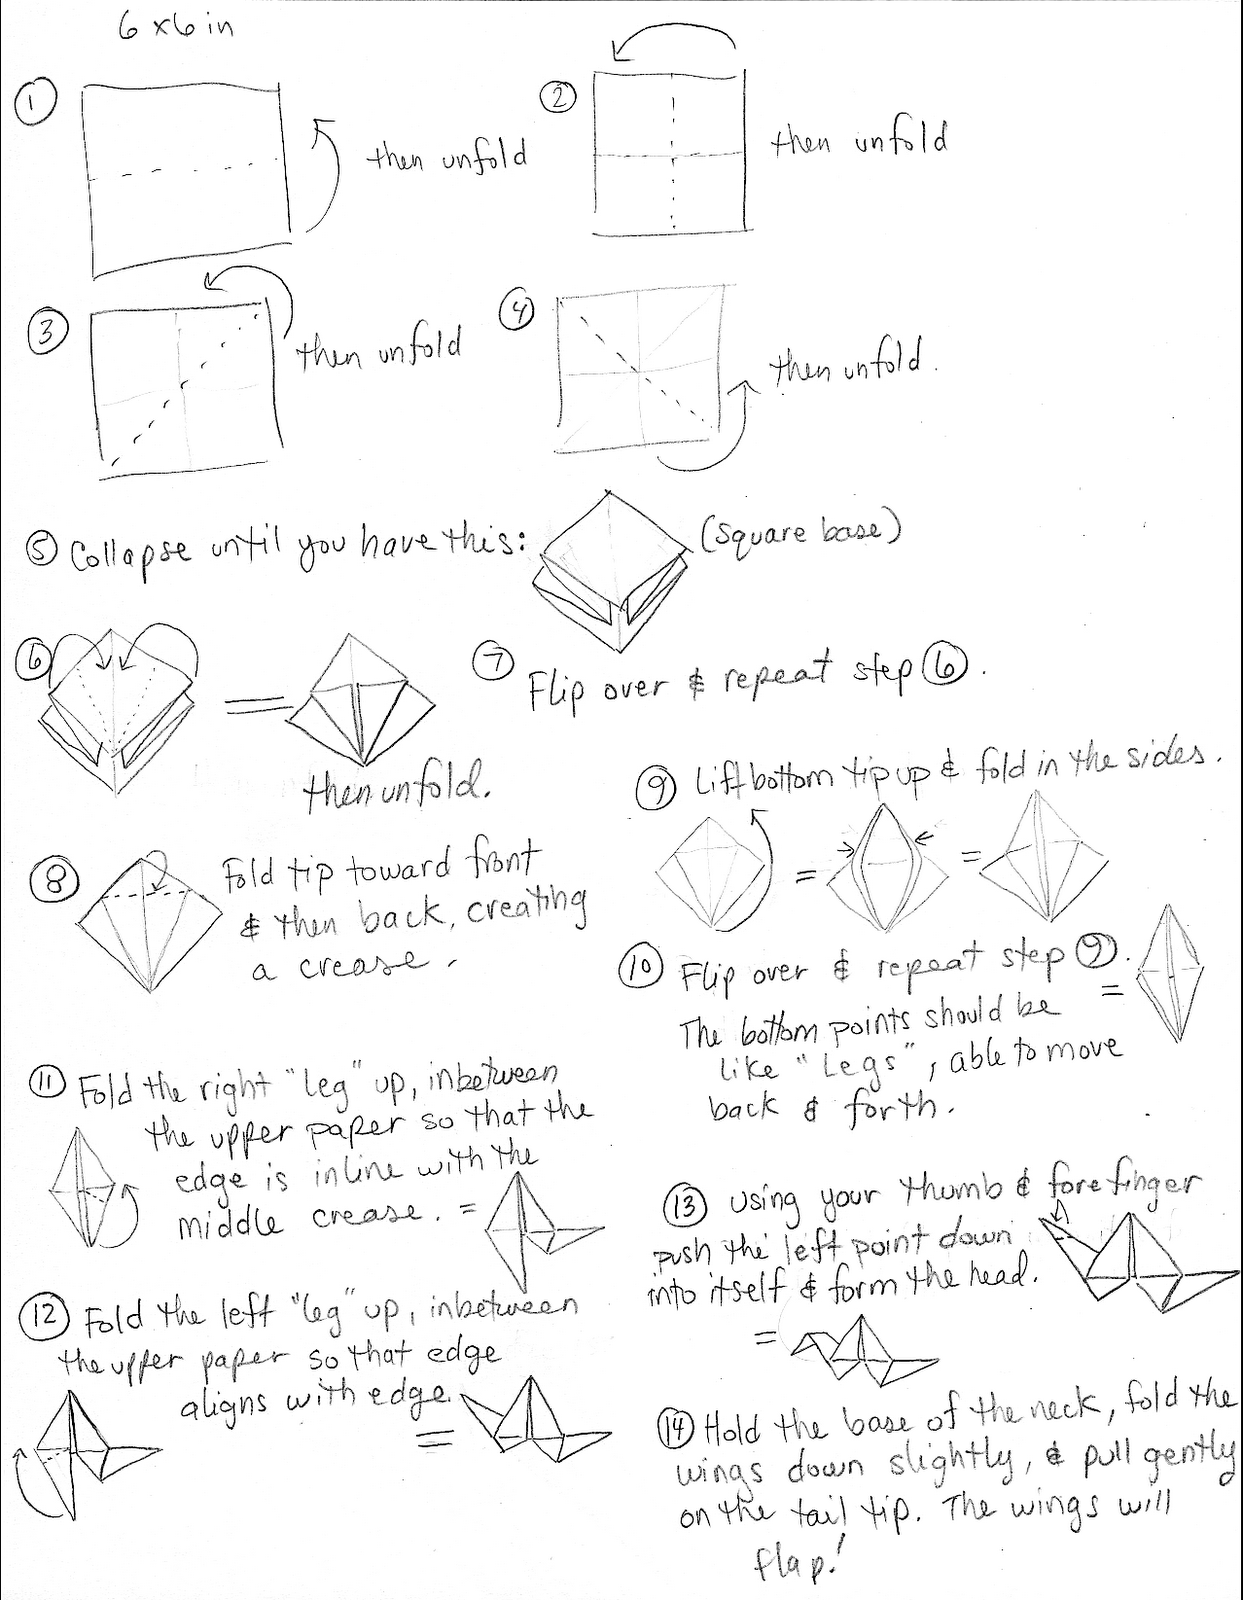 Freedom For Skylark That Flighty Temptress Origami Flapping Bird Instructions Diagram And Video This Heres A Scribbly Instruction Sheet How To Make The I Hope Its Somewhat Understandable Id Love Win Copy Of